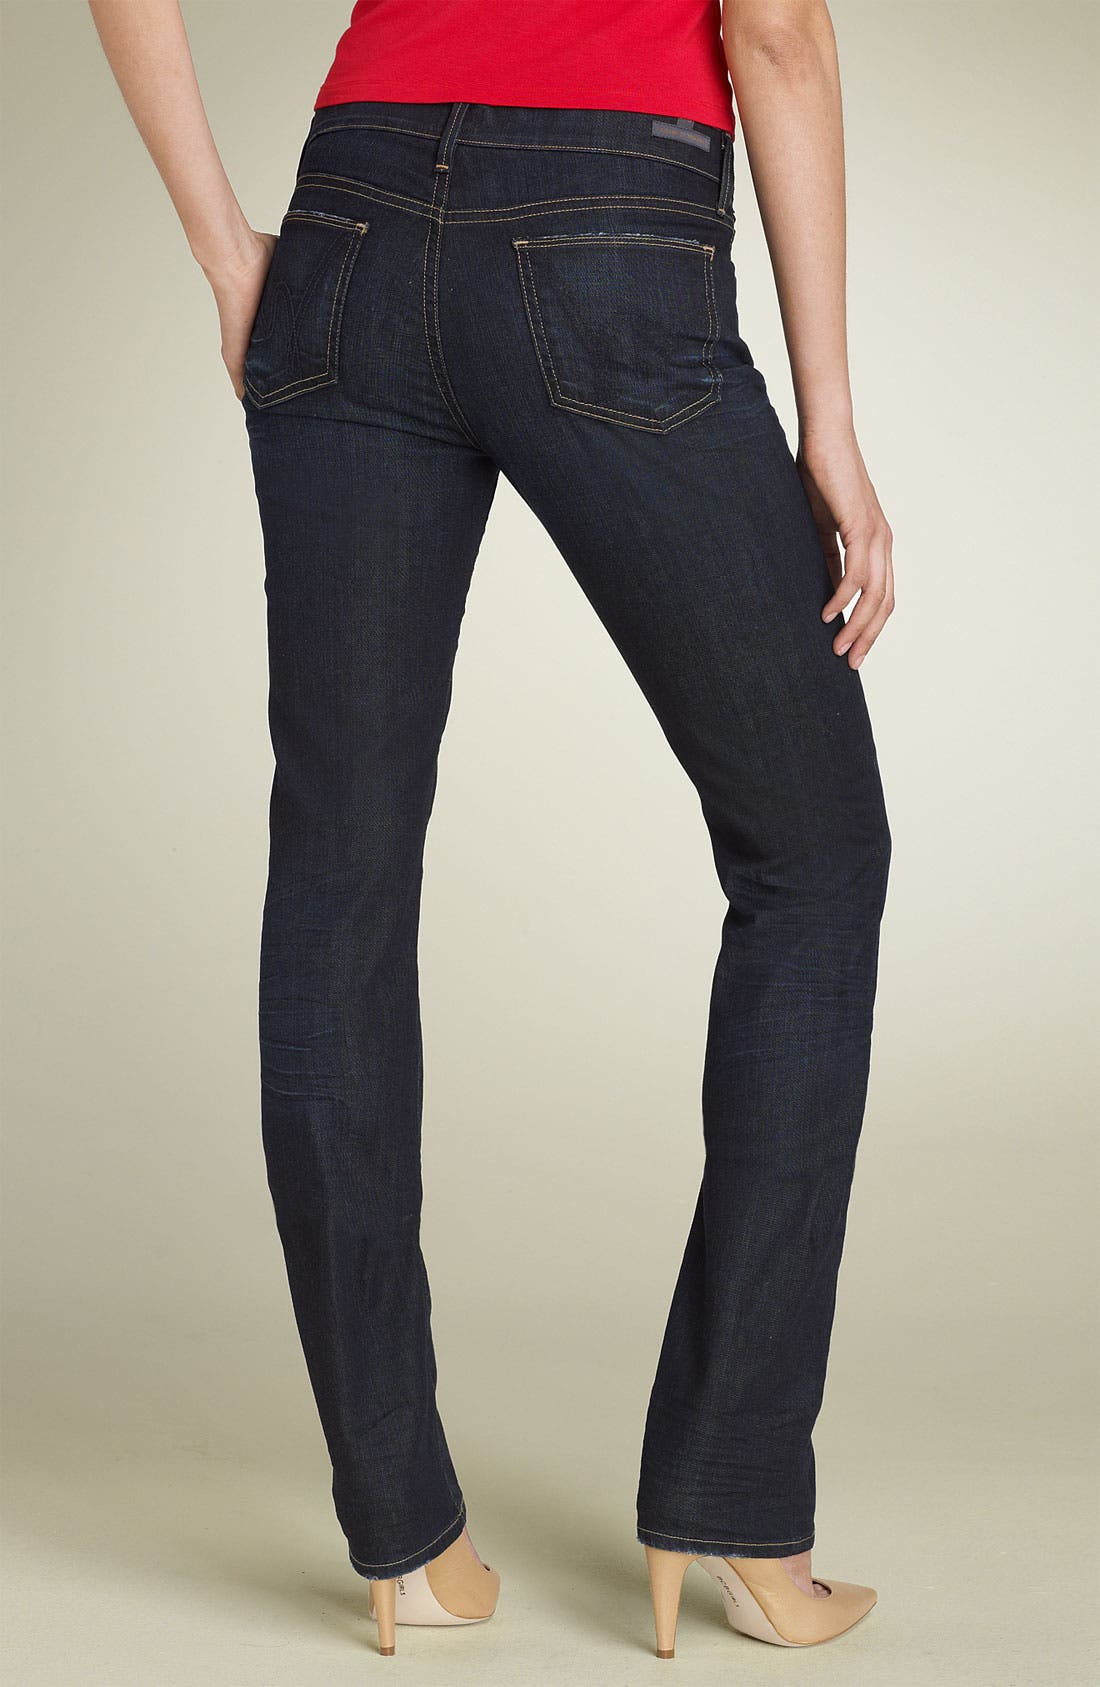 Alternate Image 1 Selected - Citizens of Humanity 'Ava' Straight Leg Stretch Jeans (Faith Wash)